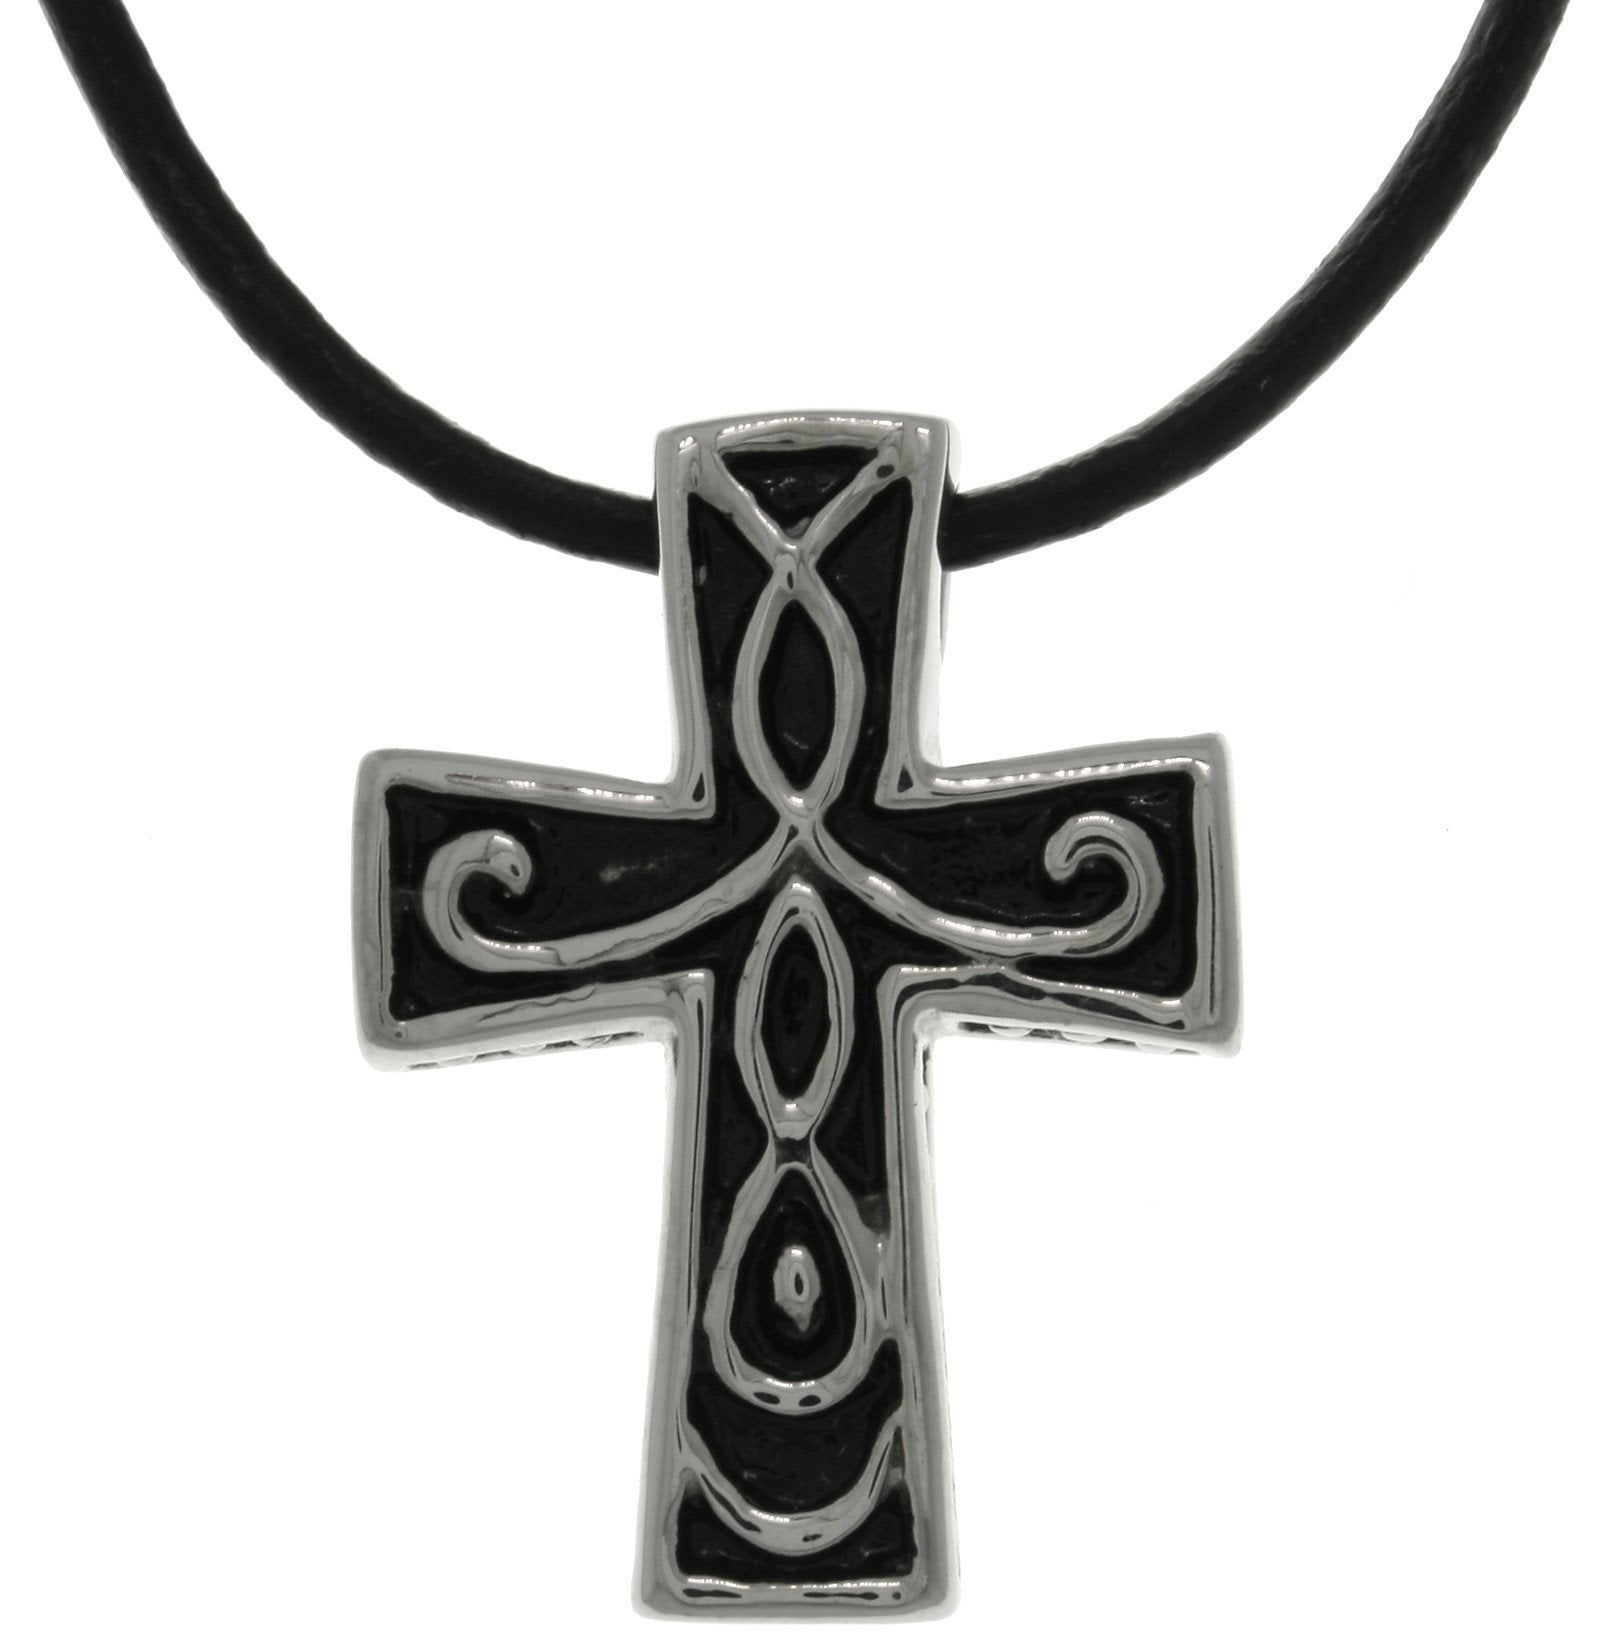 schwarz schwarzem pendant cross kreuz stein mit und black gb gothic halskette costume celtic jewelry accessories keltenkreuz with anhaenger necklace